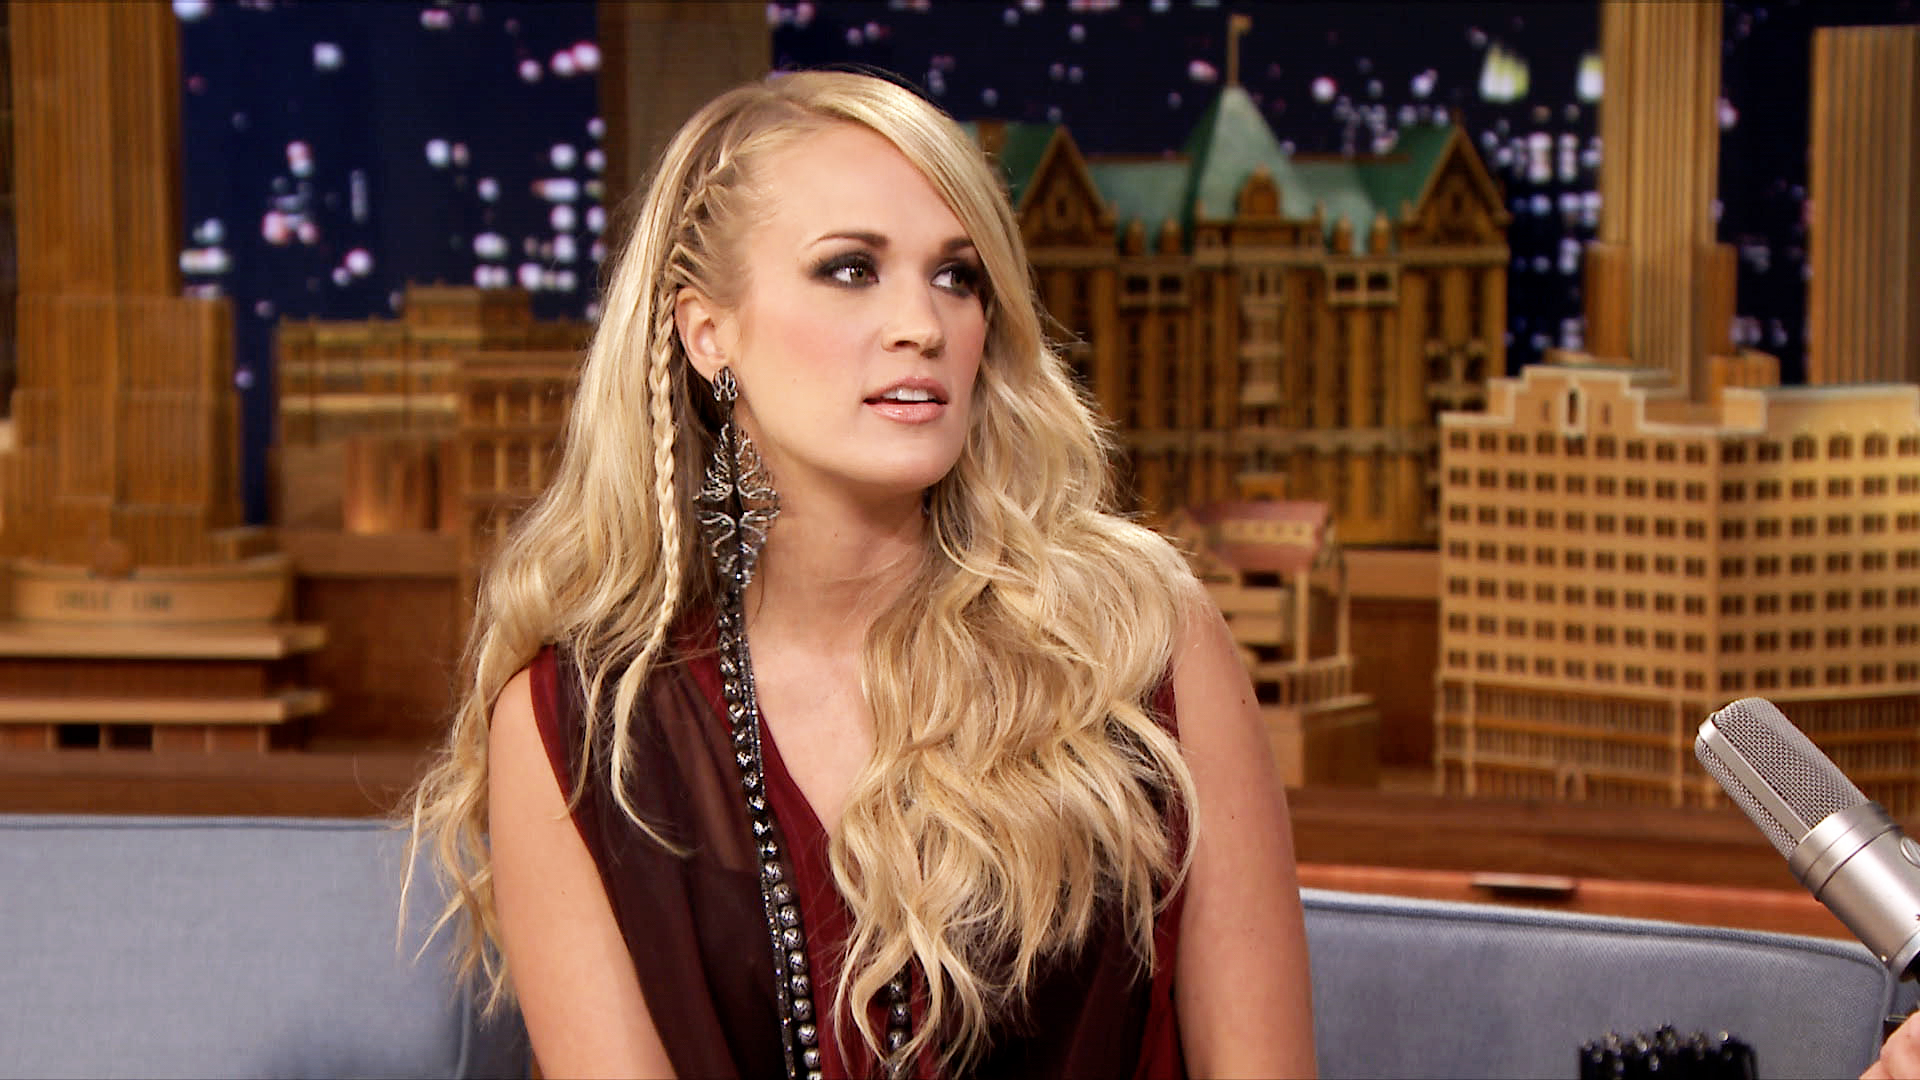 Carrie Underwood S Dogs Locked Her Baby In A Car The